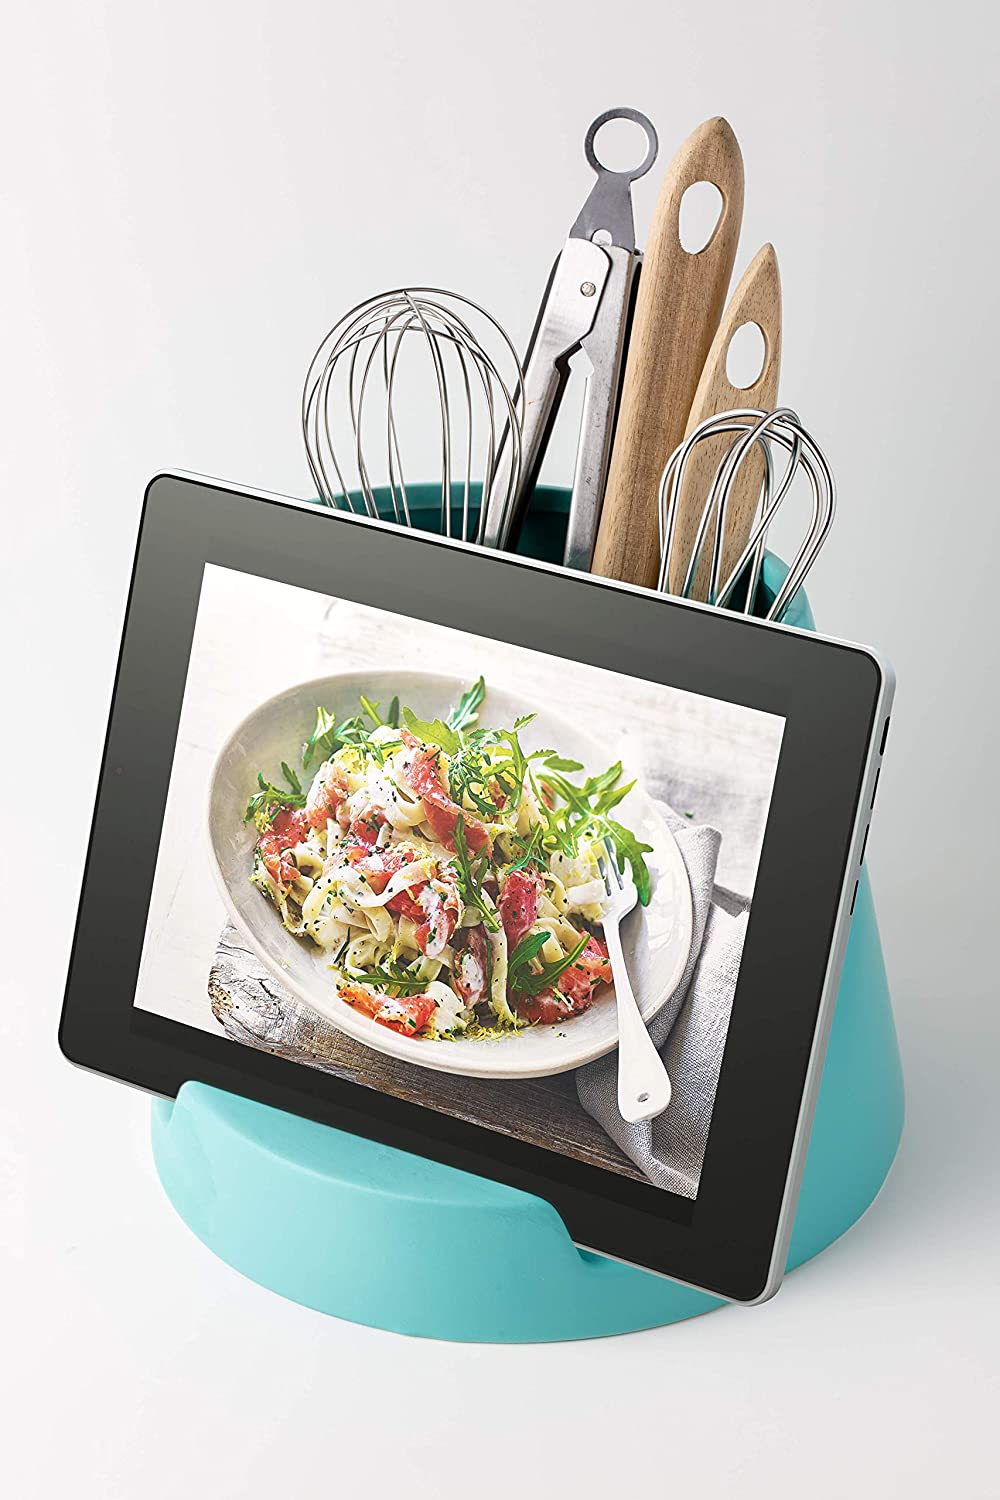 Modern White Crock w//Tablet Holder Ceramic Utensil Holder /& Tablet Stand Decorative Cookbook Stand 7.11 x 8.5 iPad or Recipe Book Holder Utensil Caddy for Contemporary Cooking Enthuziasts